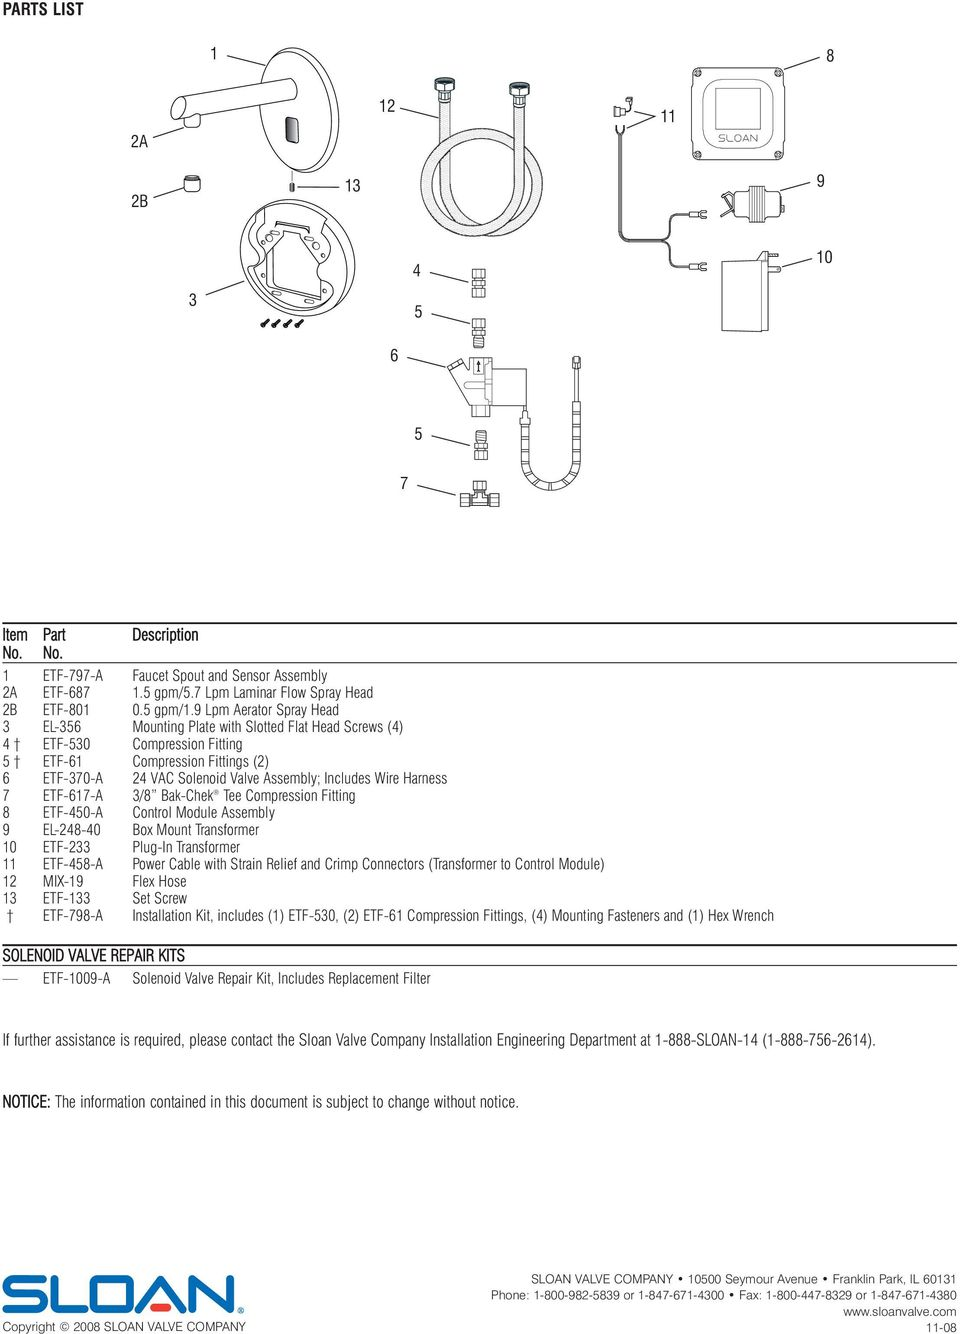 Installation Instructions For Electronic Sensor Activated Hand Diagram Of Parts Hamilton Centerset Two Handle Bathroom Faucet Harness 7 Etf 617 3 8 Ak Chek Tee Compression Fitting